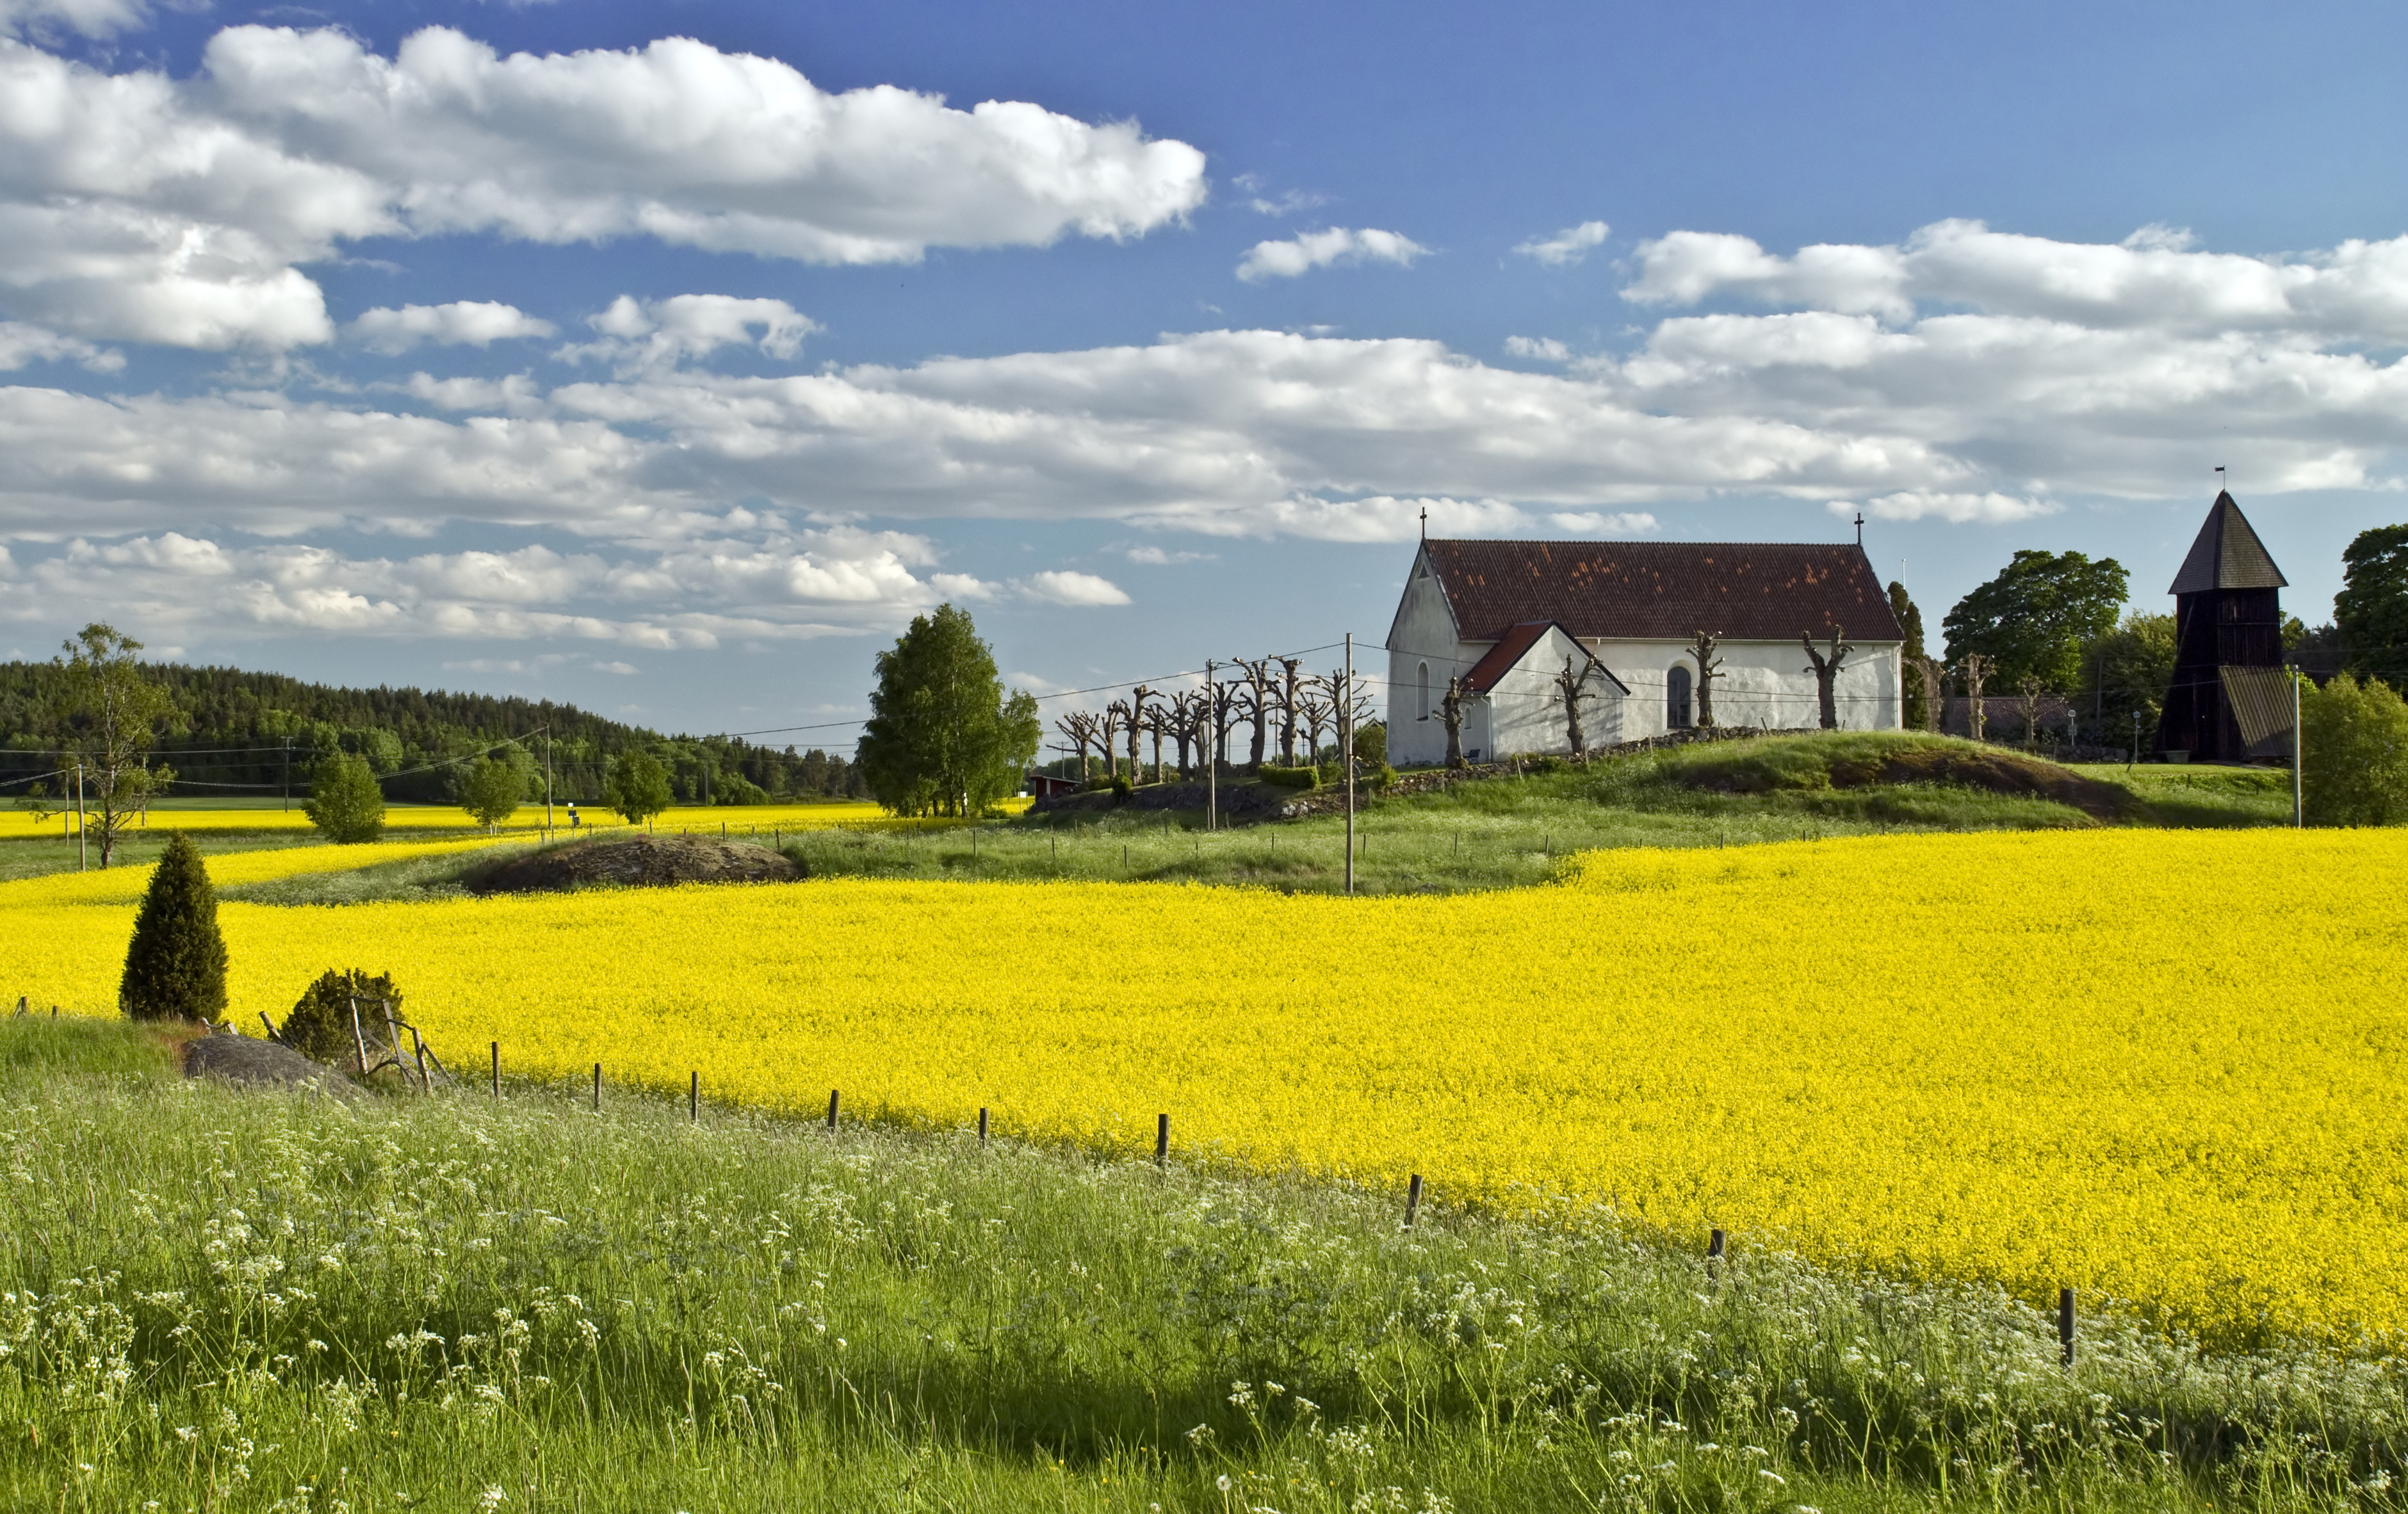 Sweden's Countryside